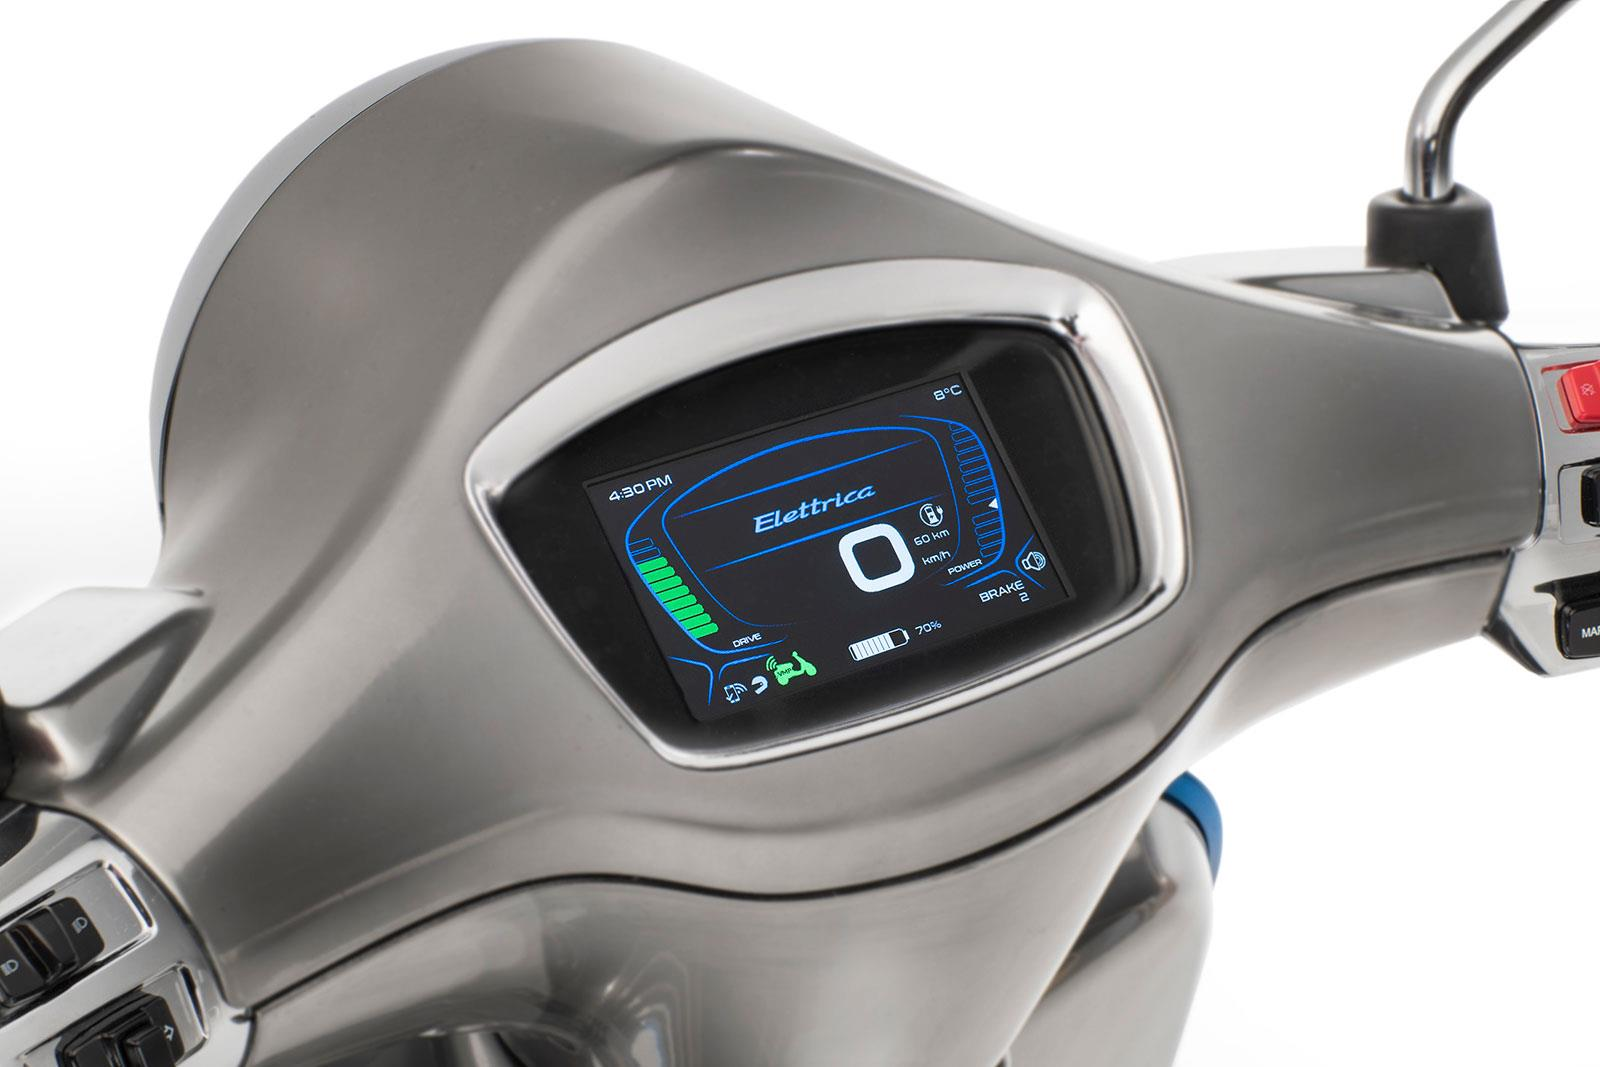 The TFT dash on the Vespa Elettrica betrays its modernity